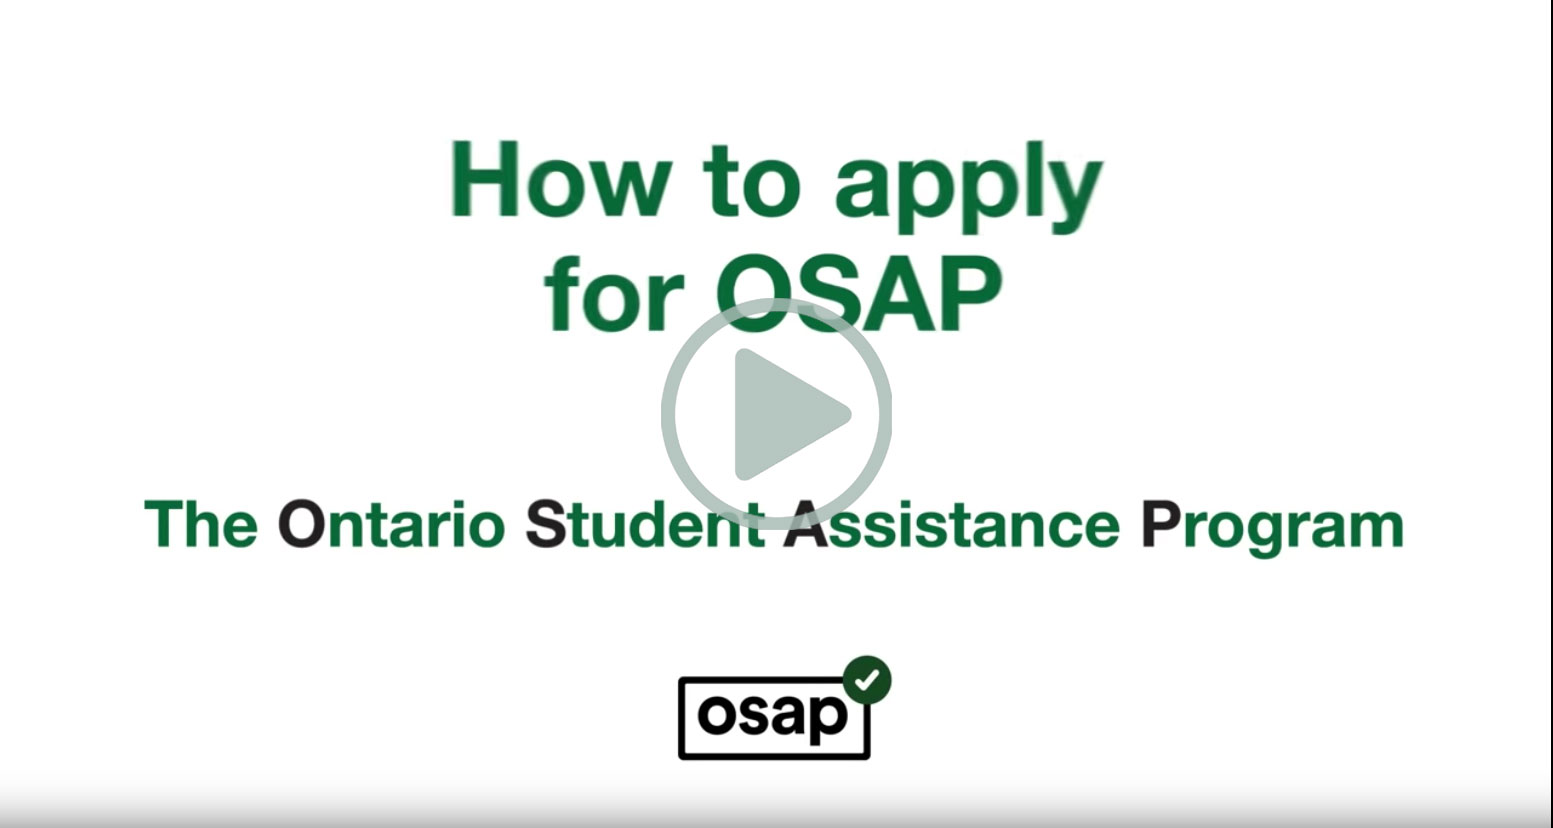 The thumbnail of the OSAP instruction video